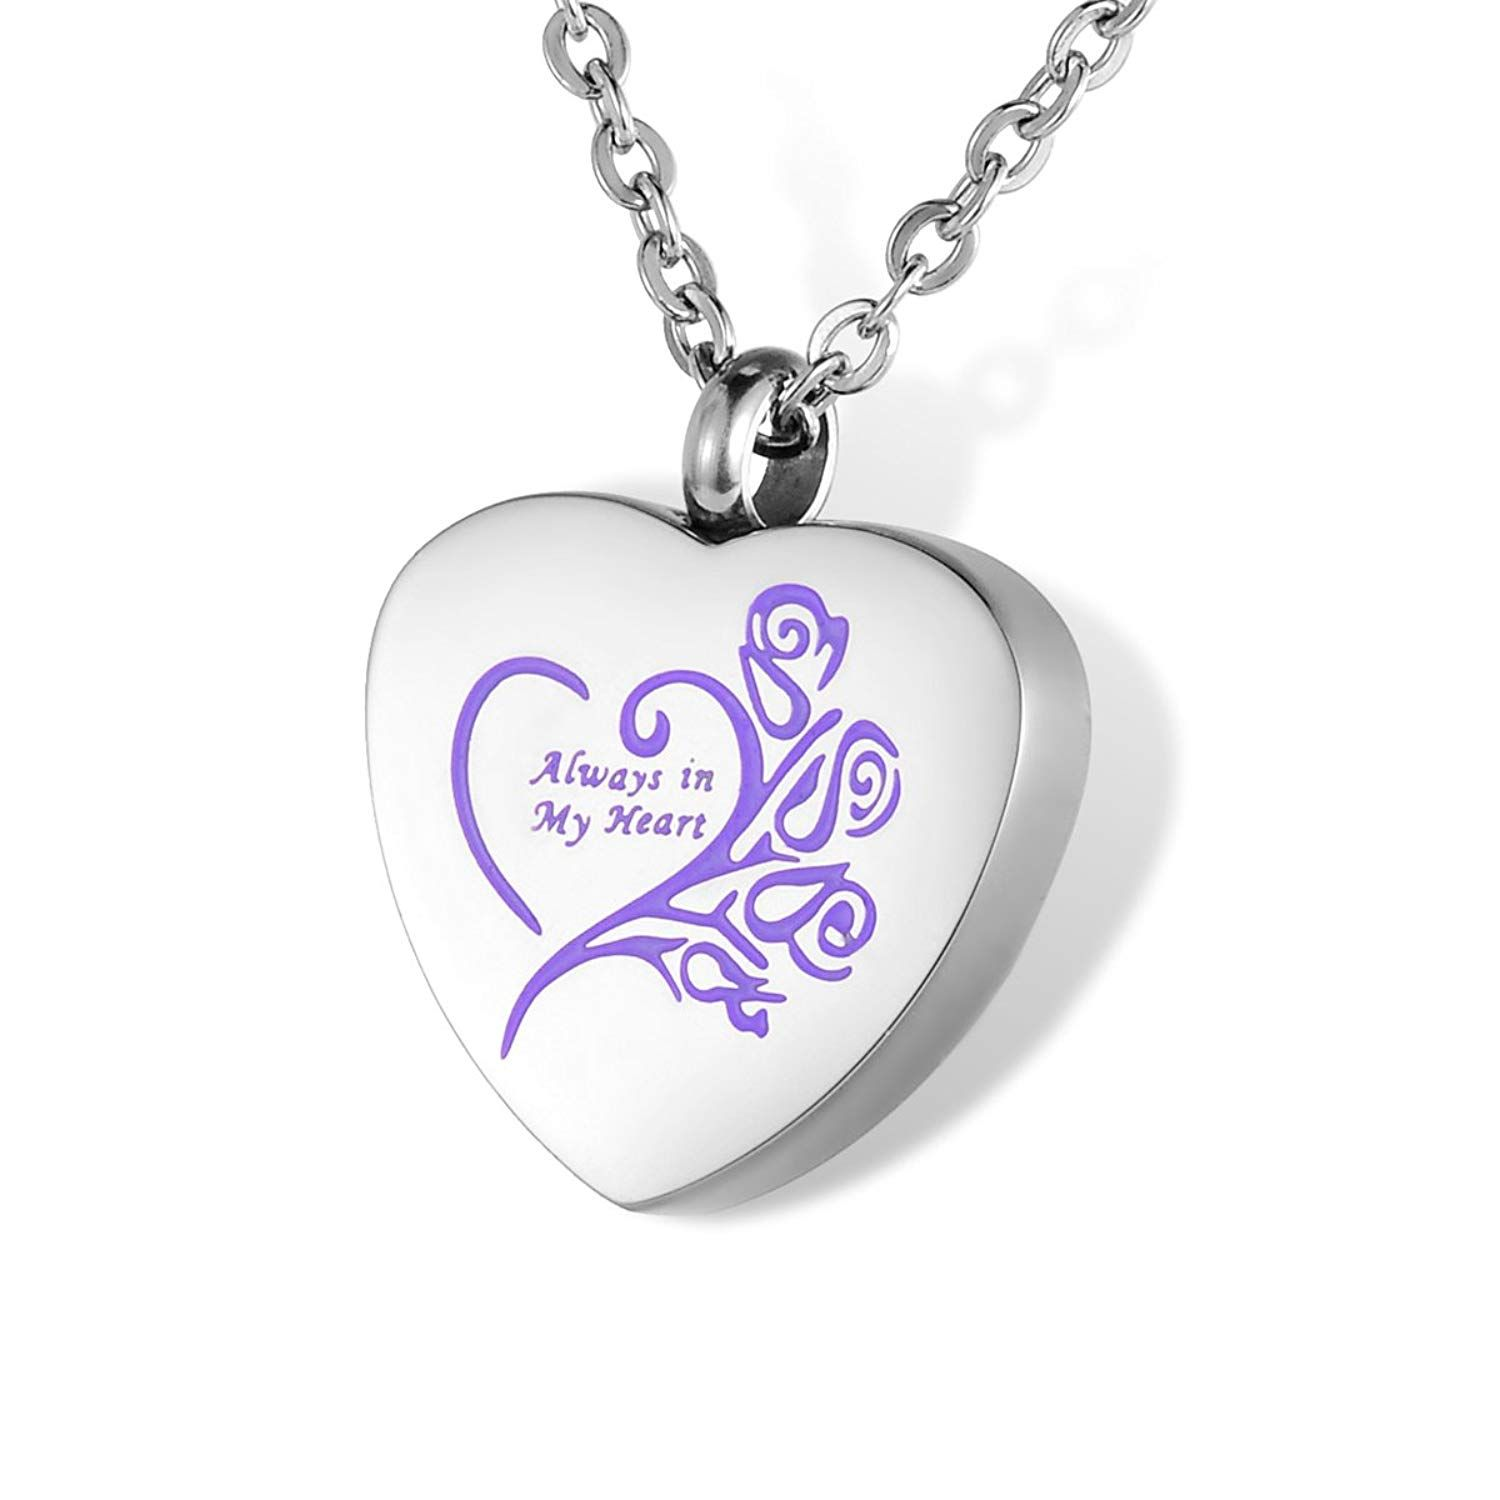 Cremation Urn Jewelry for Ashes Engraved Always in My Heart